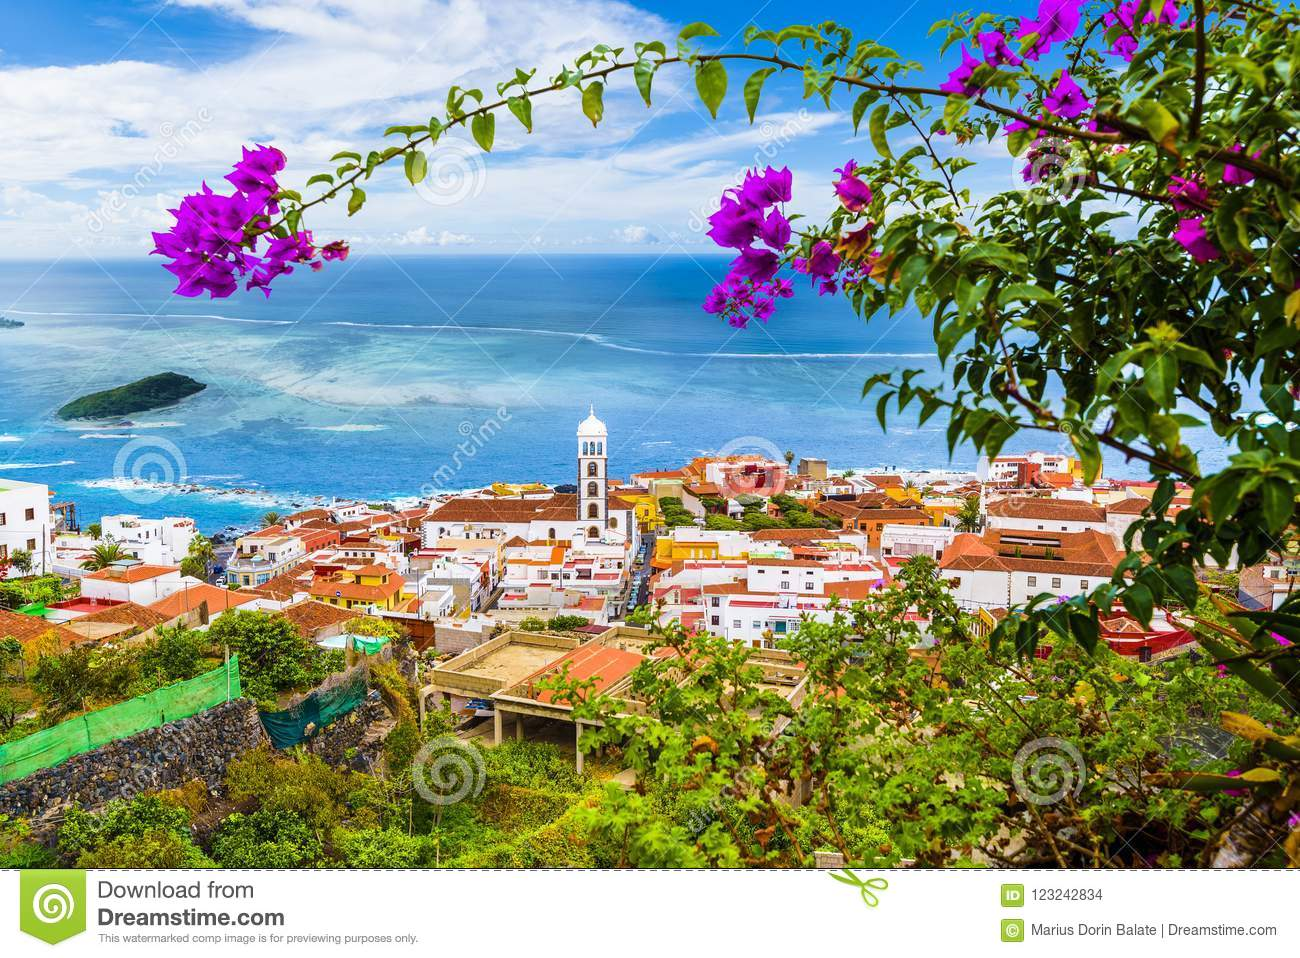 View of Garachico town of Tenerife, Canary Islands, Spain